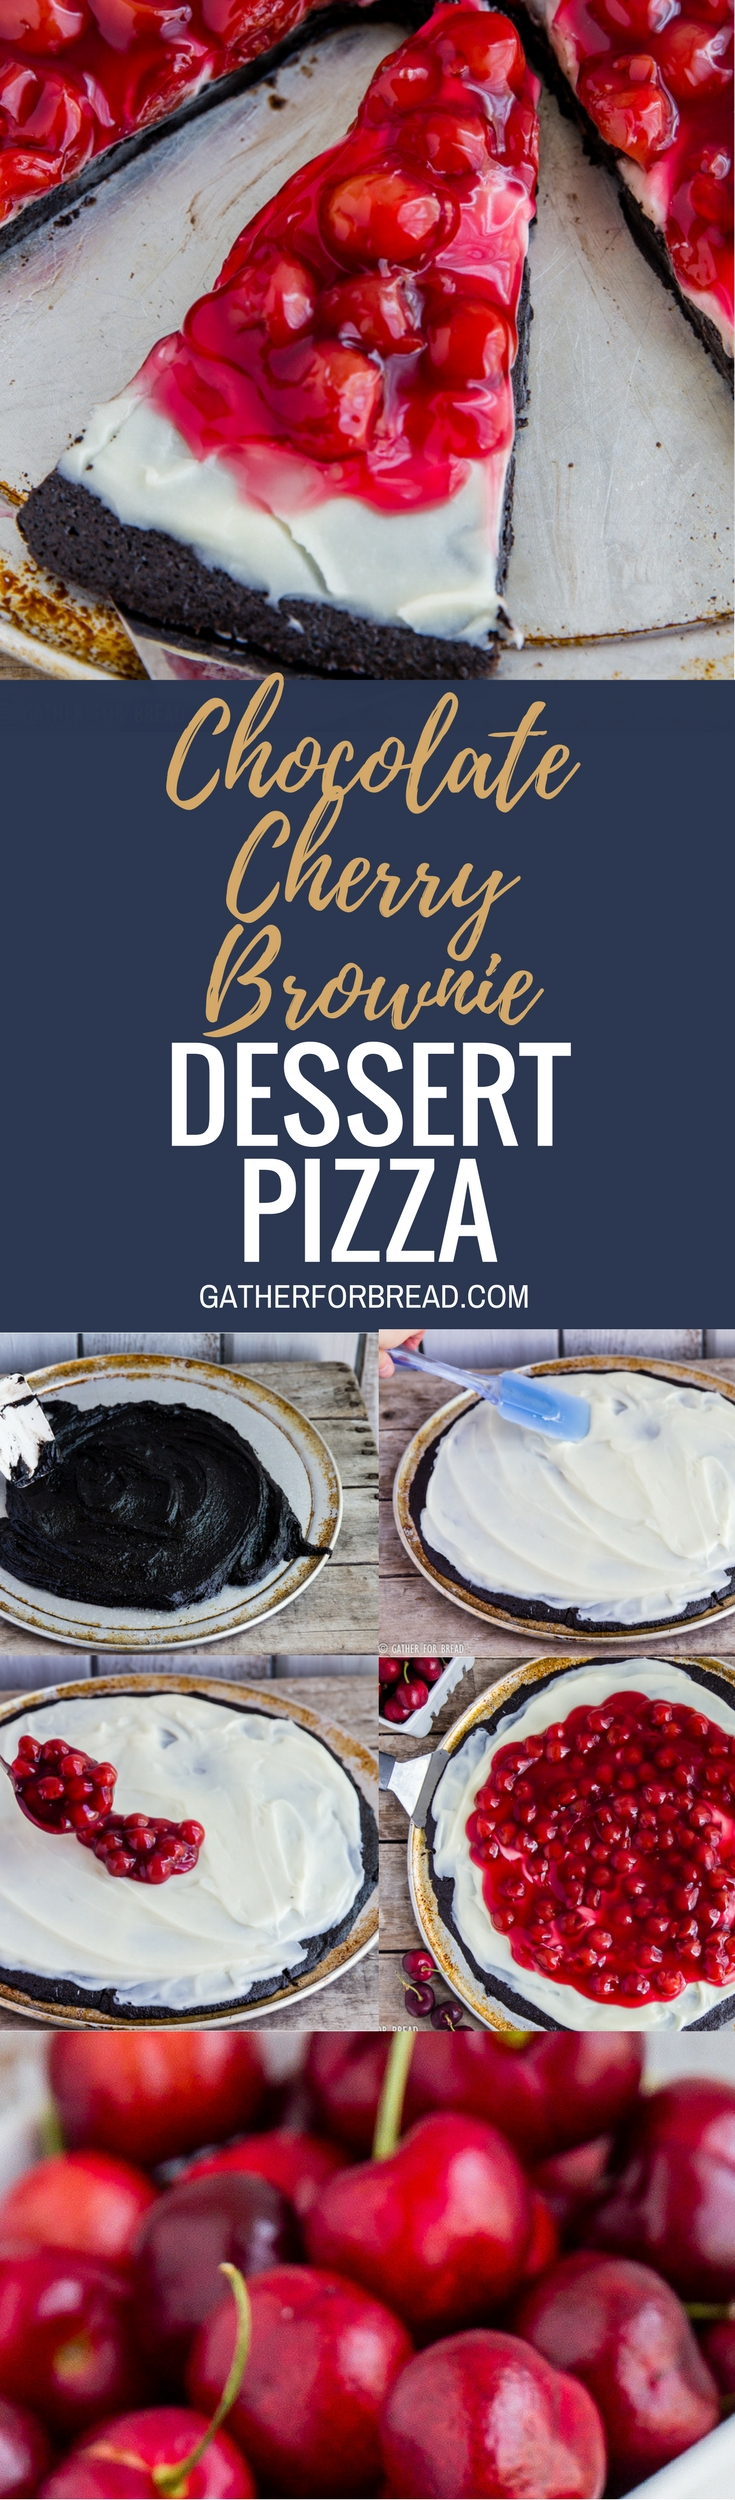 Chocolate Cherry Brownie Dessert Pizza - Cherry cheese dessert recipe with homemade brownies, fluffy cream cheese frosting and cherry pie filling for a sweet easy dessert.